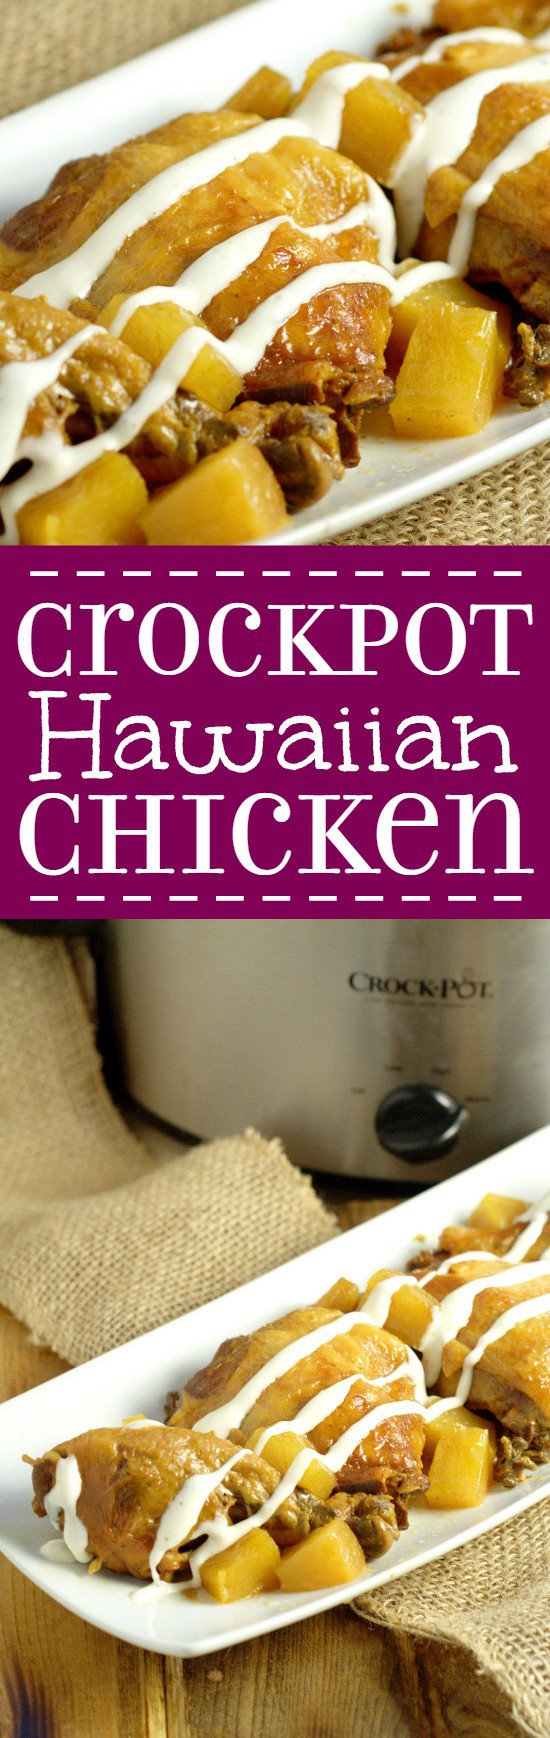 Just 3 ingredients in this Crockpot Hawaiian Chicken recipe for a delicious fix-it-and-forget-it family dinner meal, cooked in the slow cooker. Sweet pineapple and spicy BBQ make this chicken amazing!